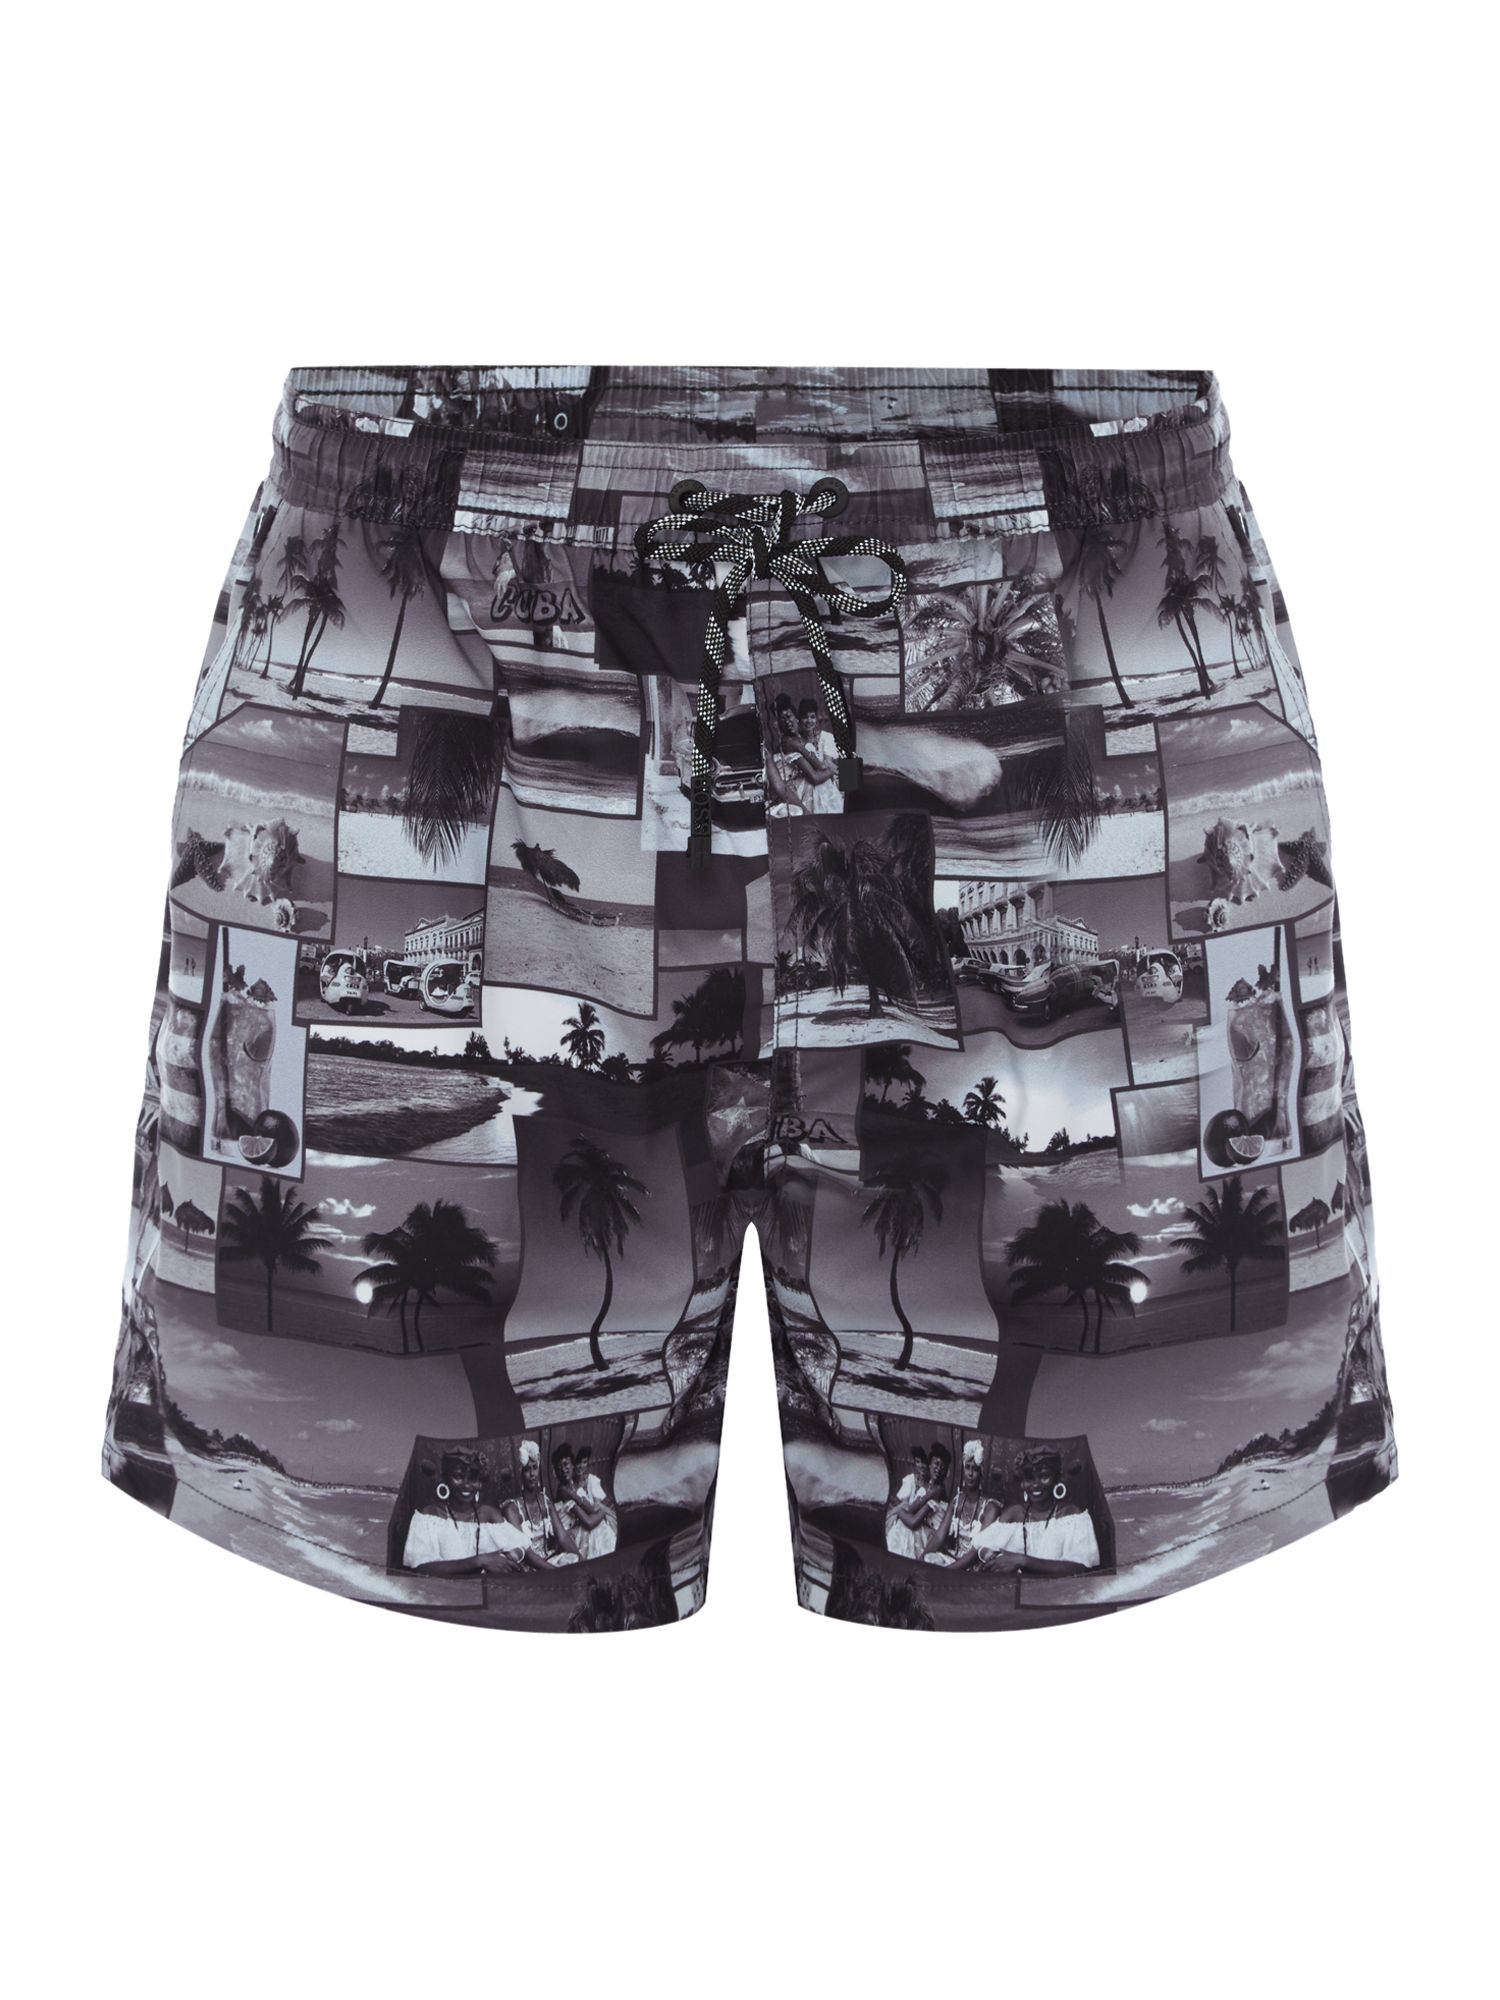 Men's Hugo Boss Springfish Cuba Print Swim Shorts, Black